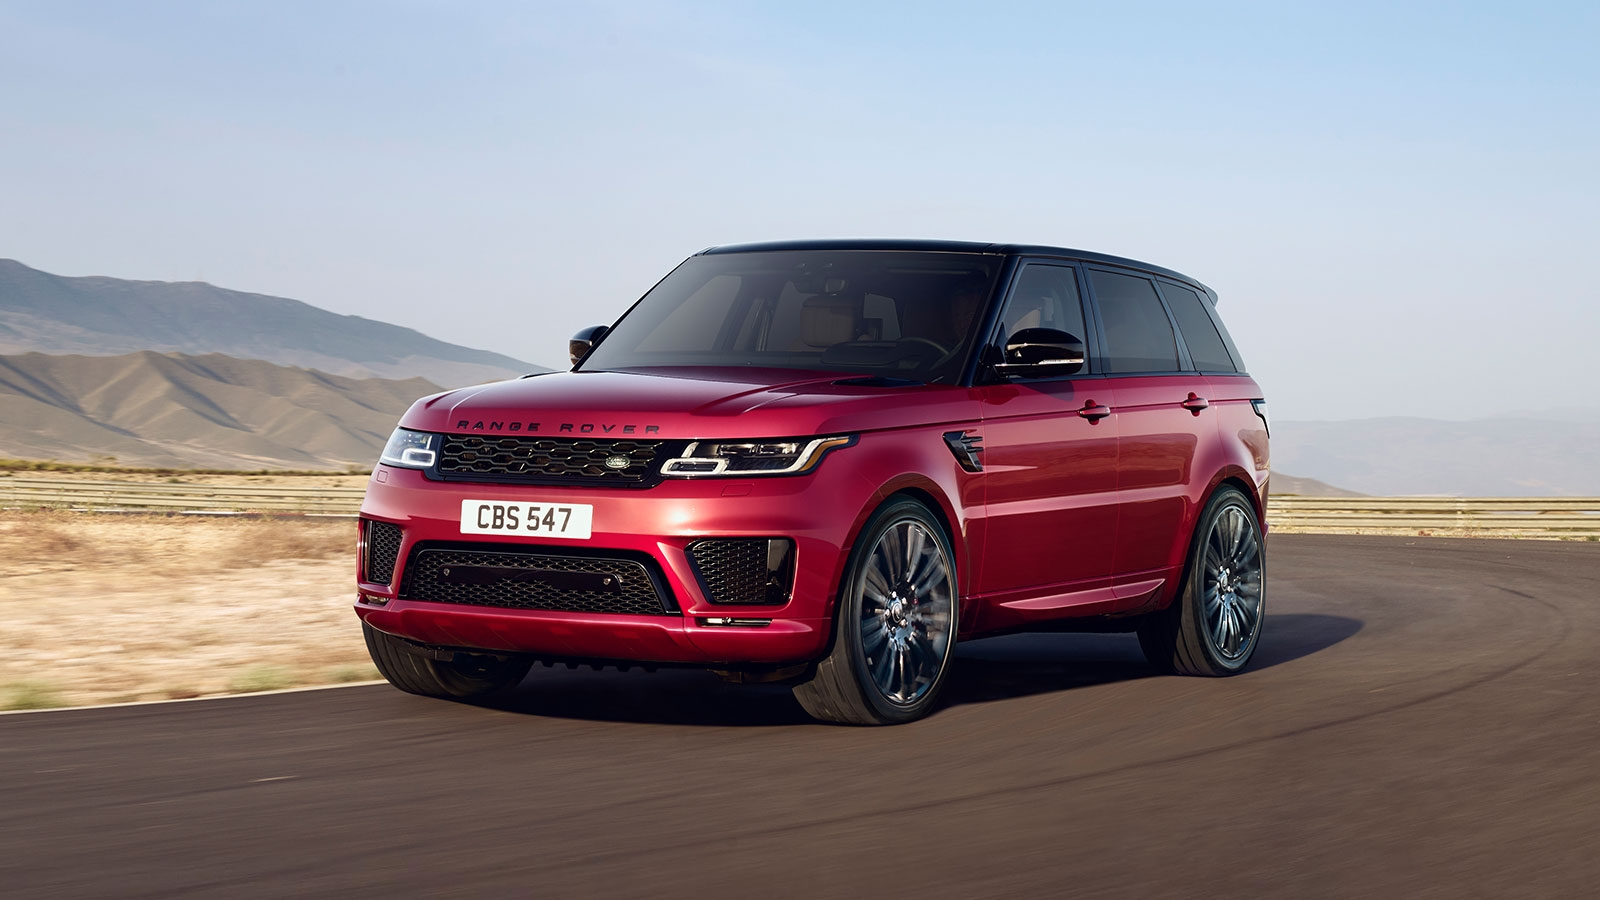 New 2019 Land Rover Range Rover Sport model in Pasadena